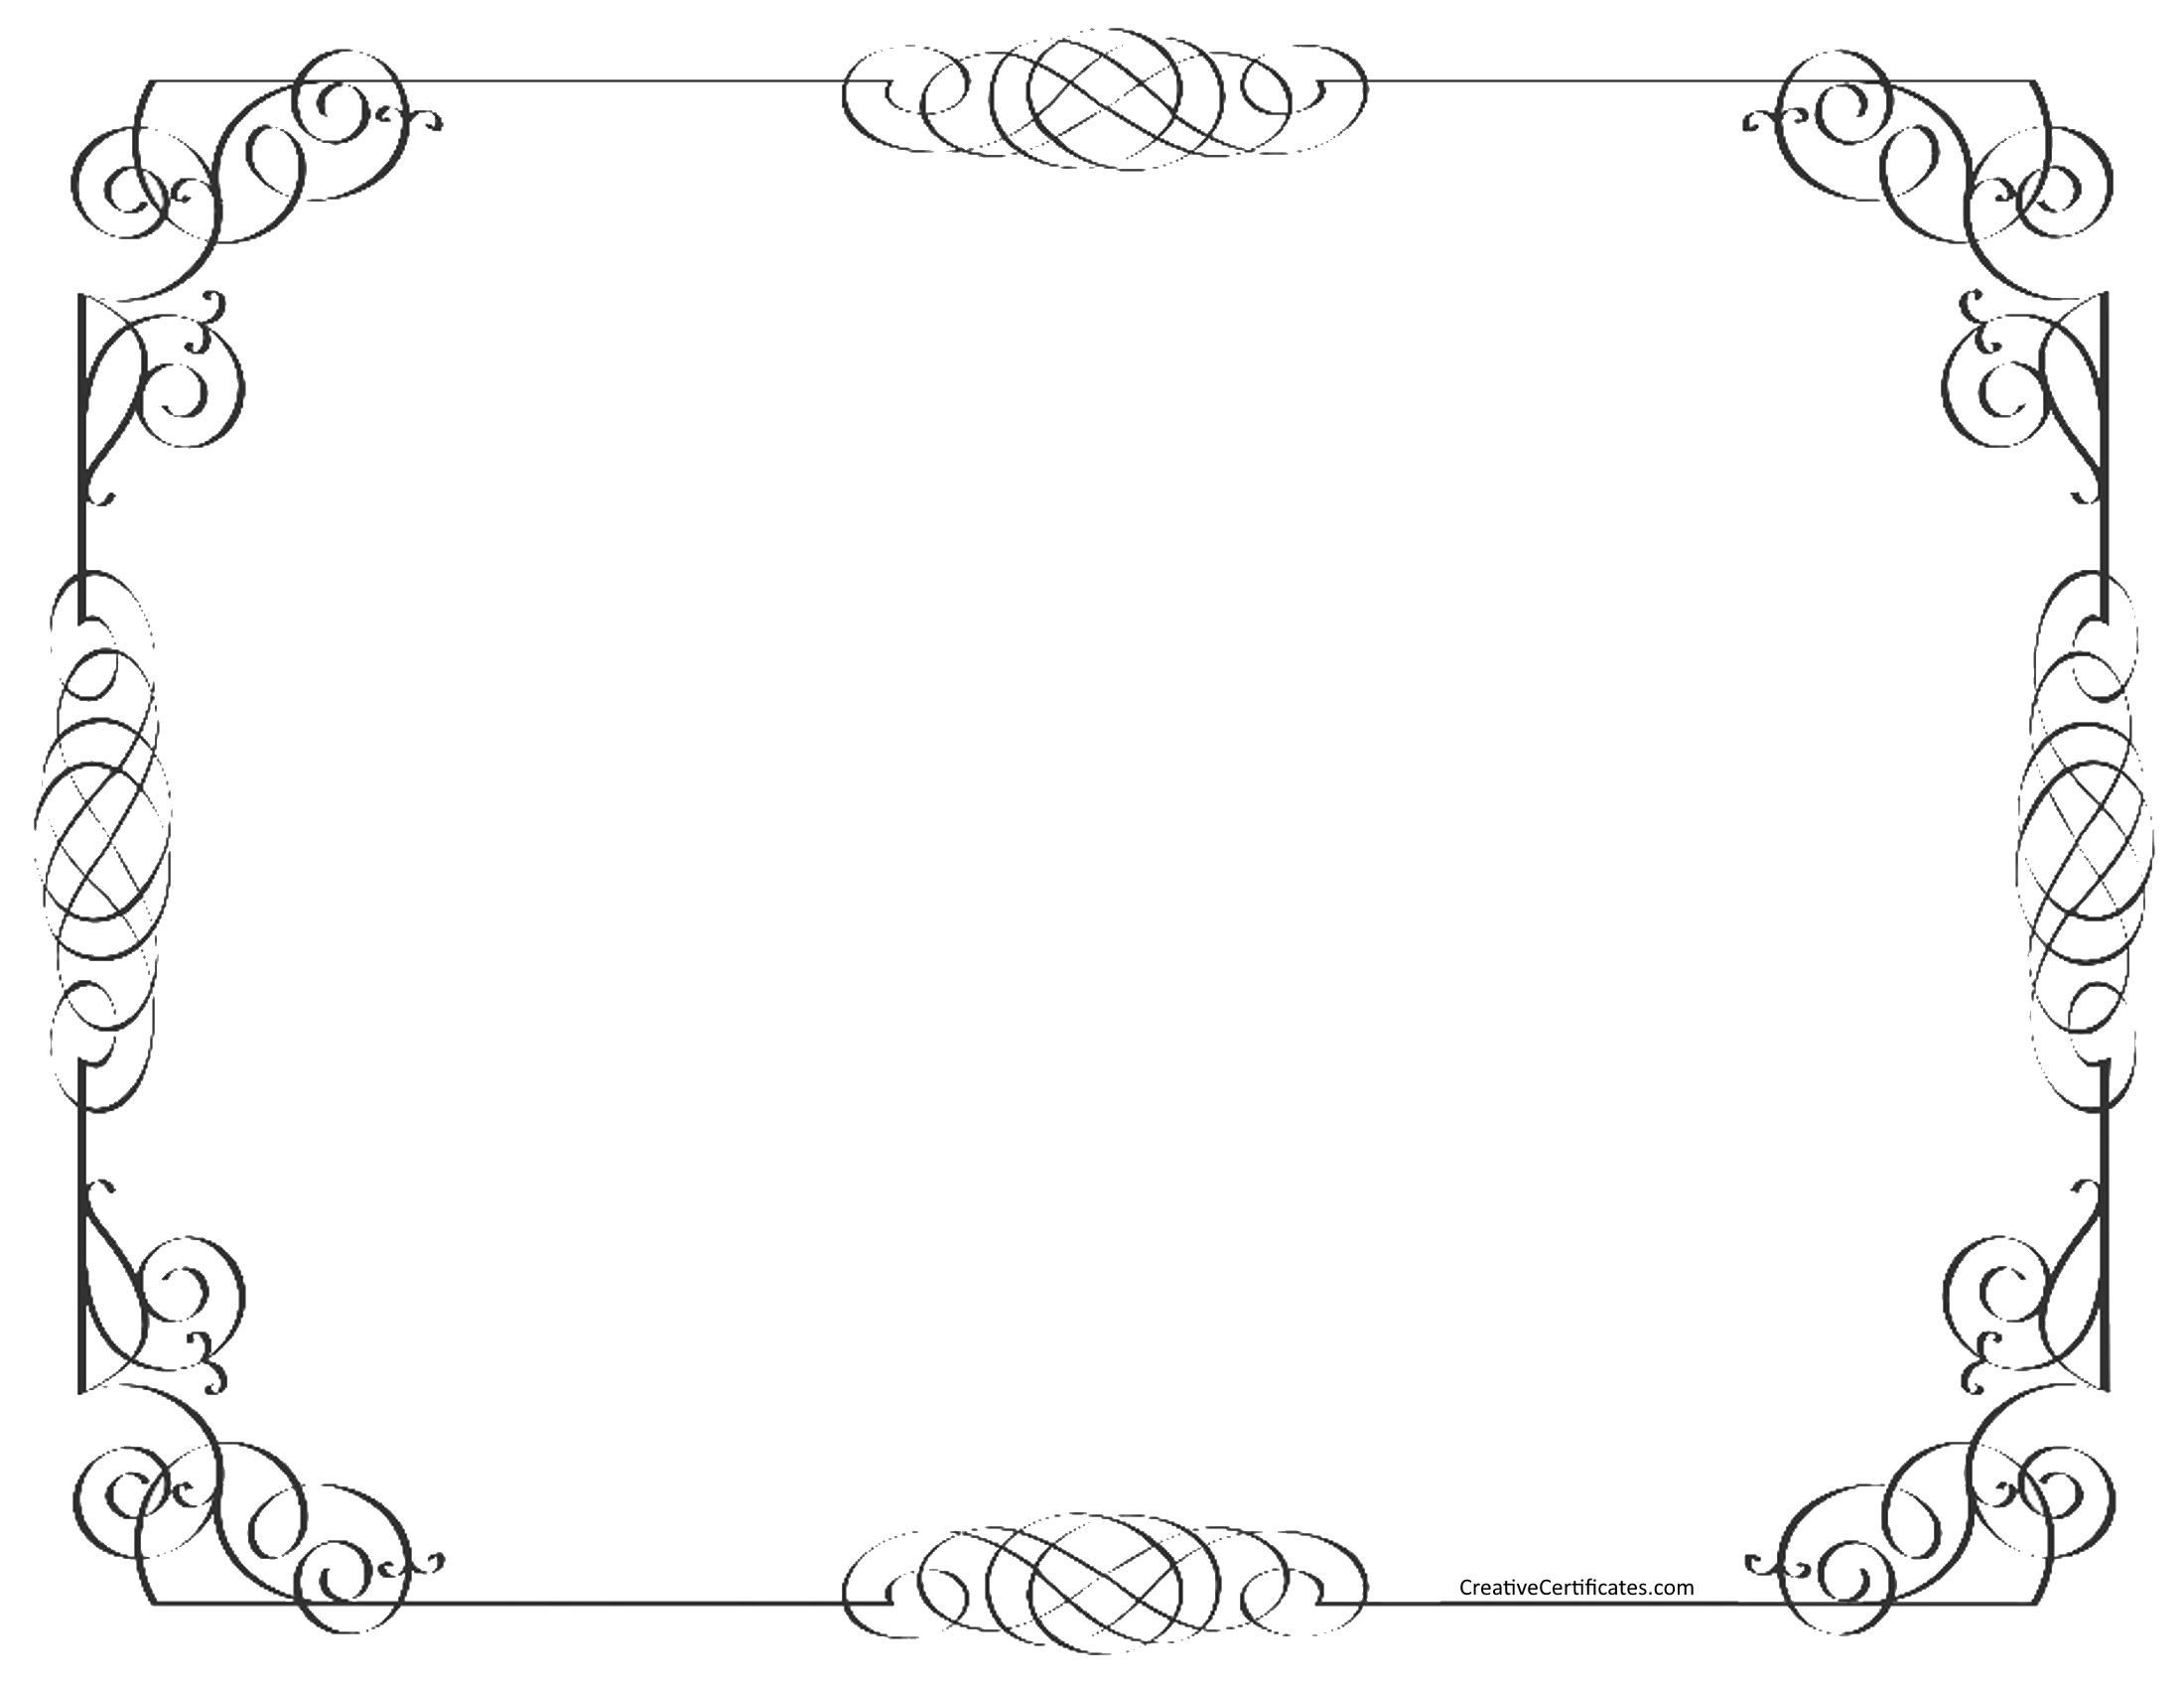 Ornate border png. Black and white group